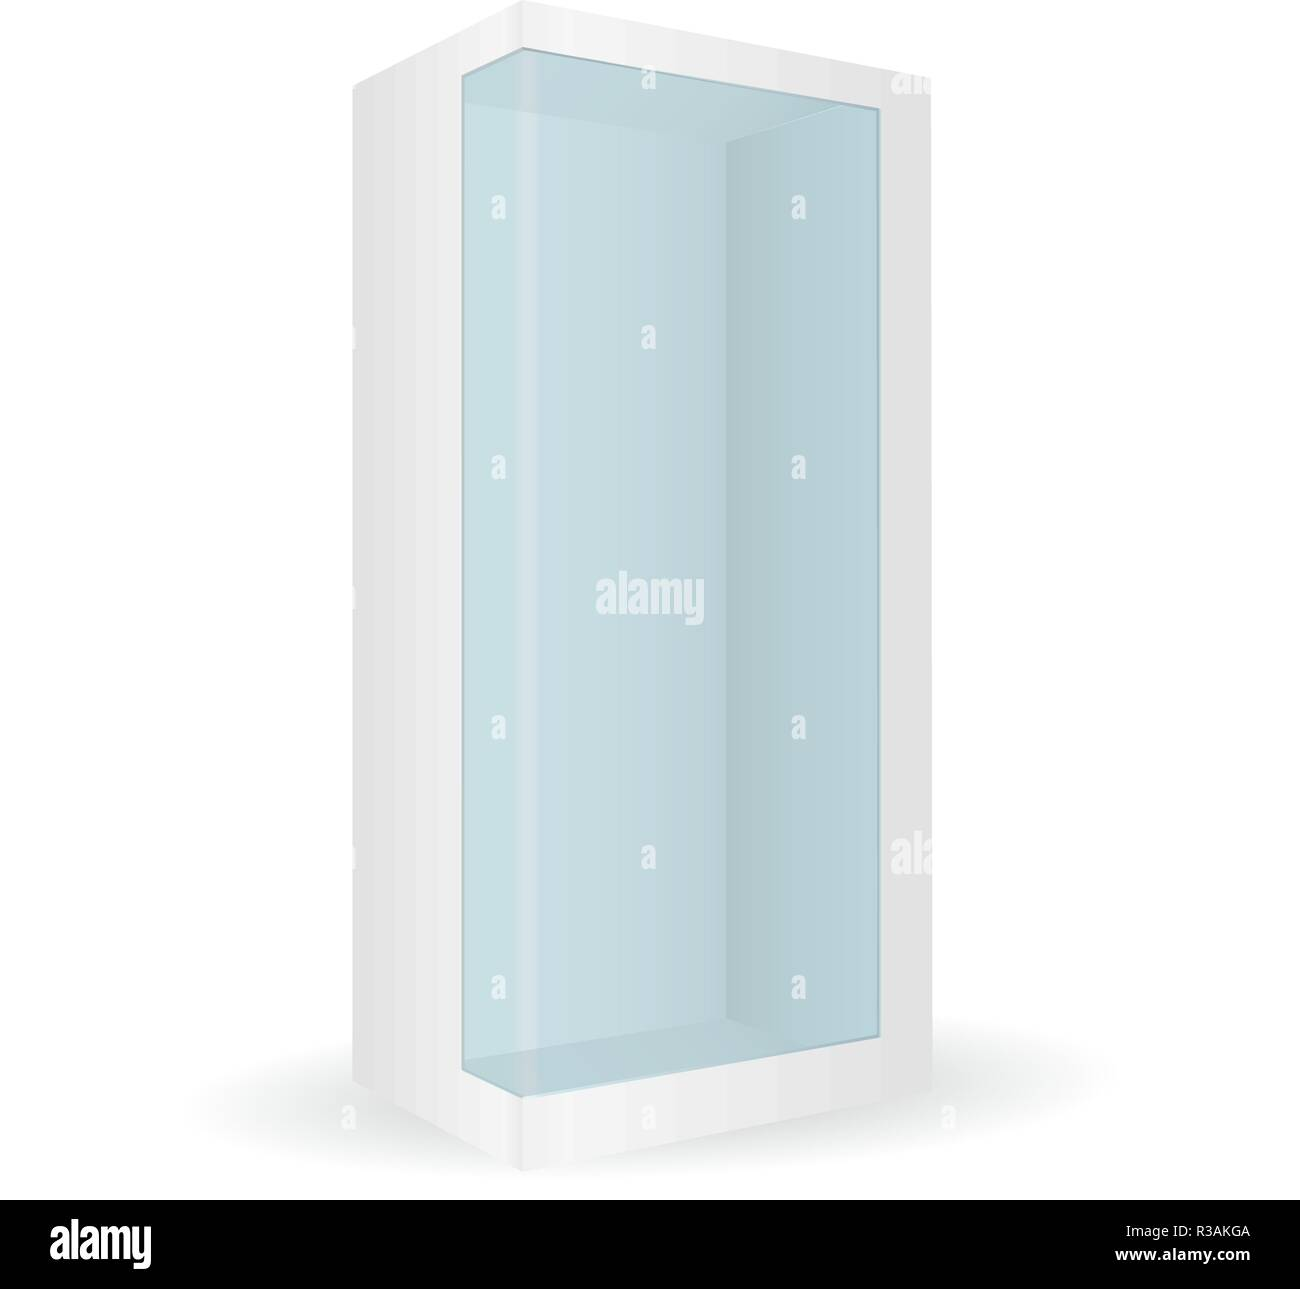 White box with transparent side - Stock Image